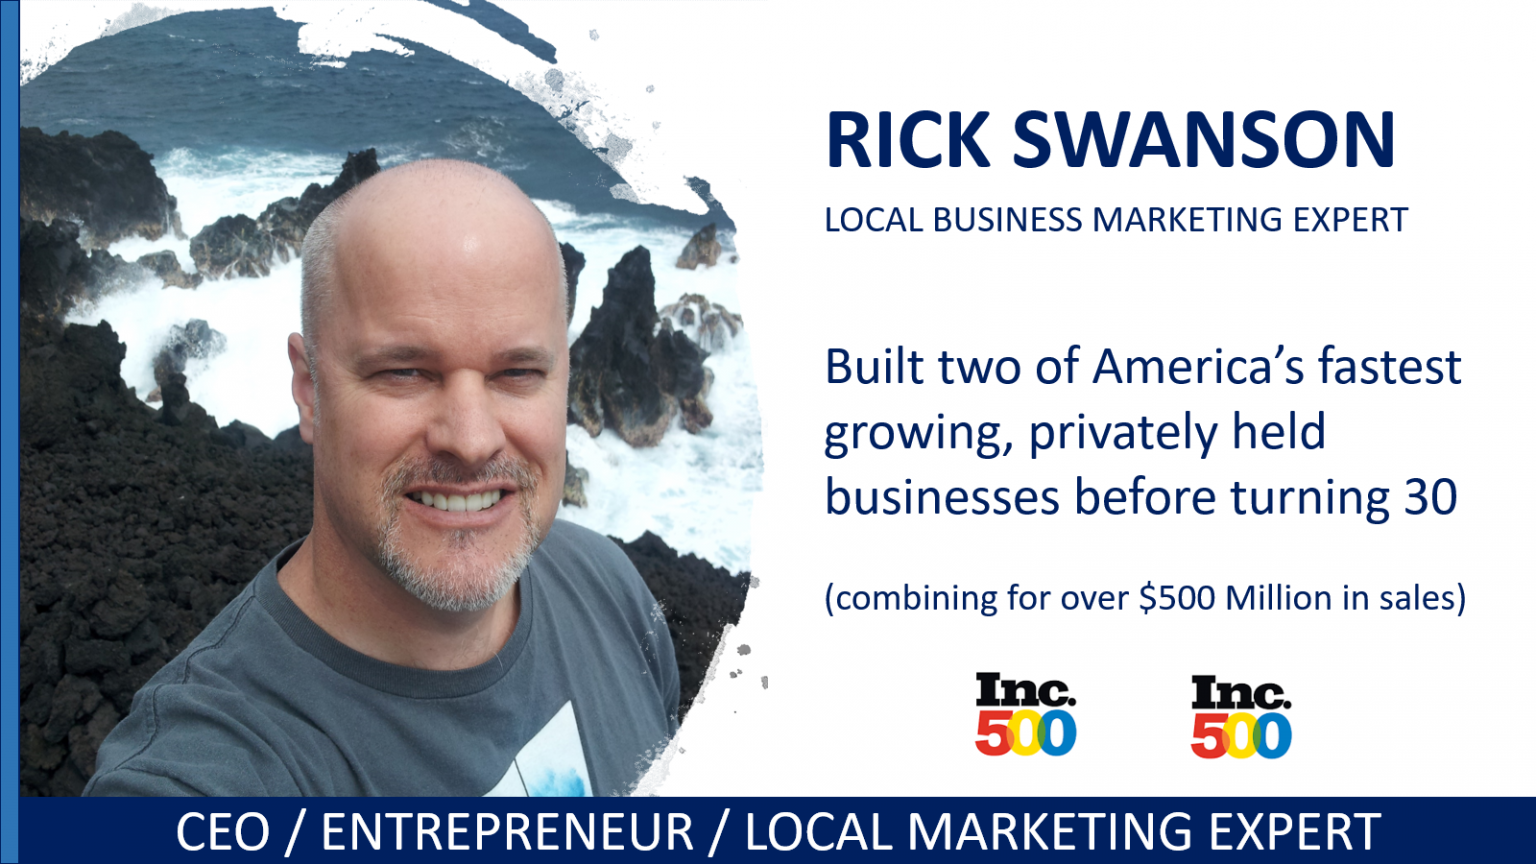 22 - Ten10 Founder - Rick Swanson